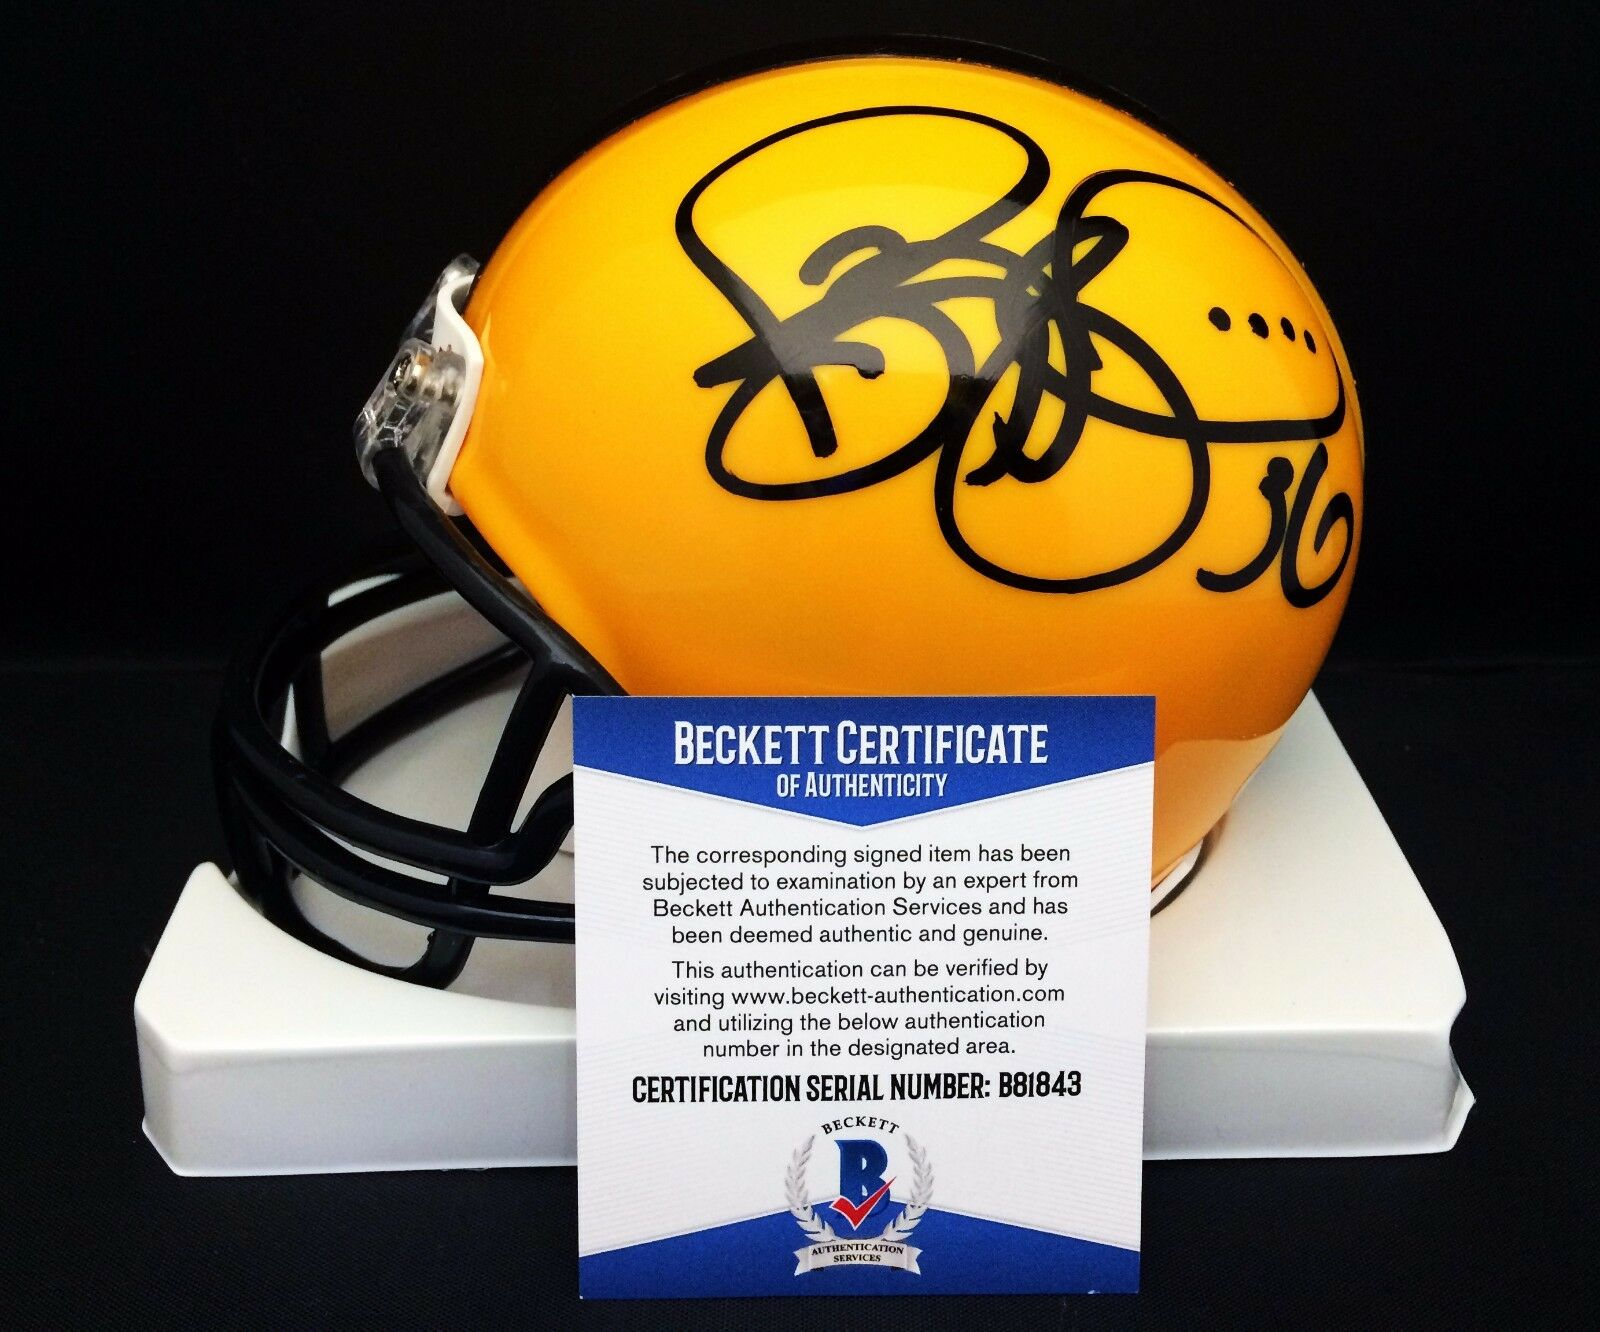 Jerome Bettis Signed Yellow Pittsburgh Steelers Football Mini Helmet BAS B81843